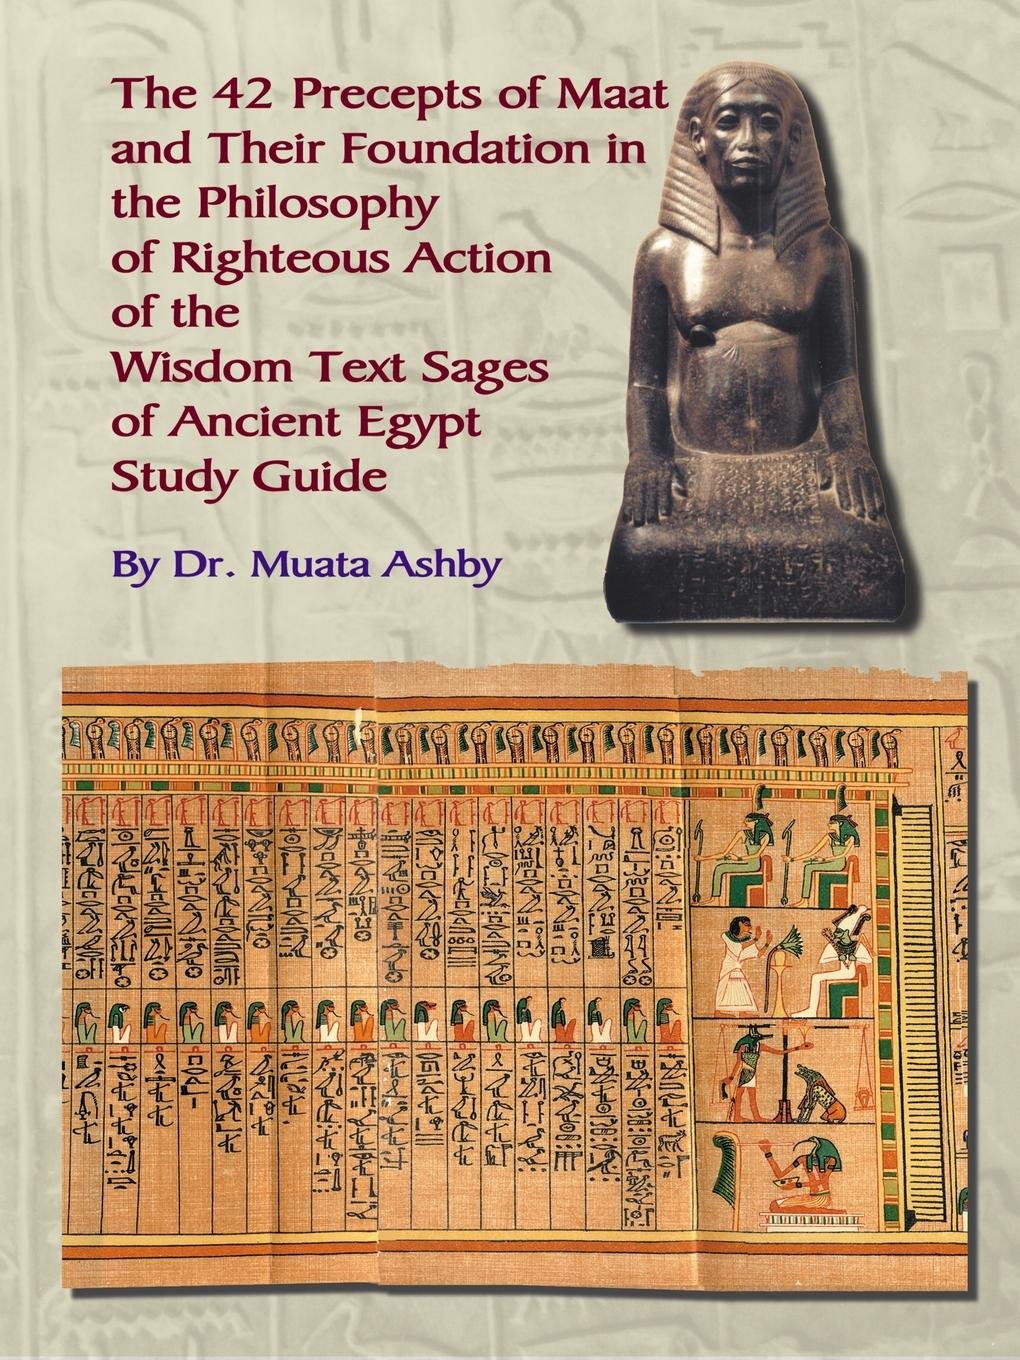 Read Online the 42 Preceps of Maat and Their Foundation in the Philosophy of Righteous Action of the Wisdom Text Sages of Ancient Egypt pdf epub